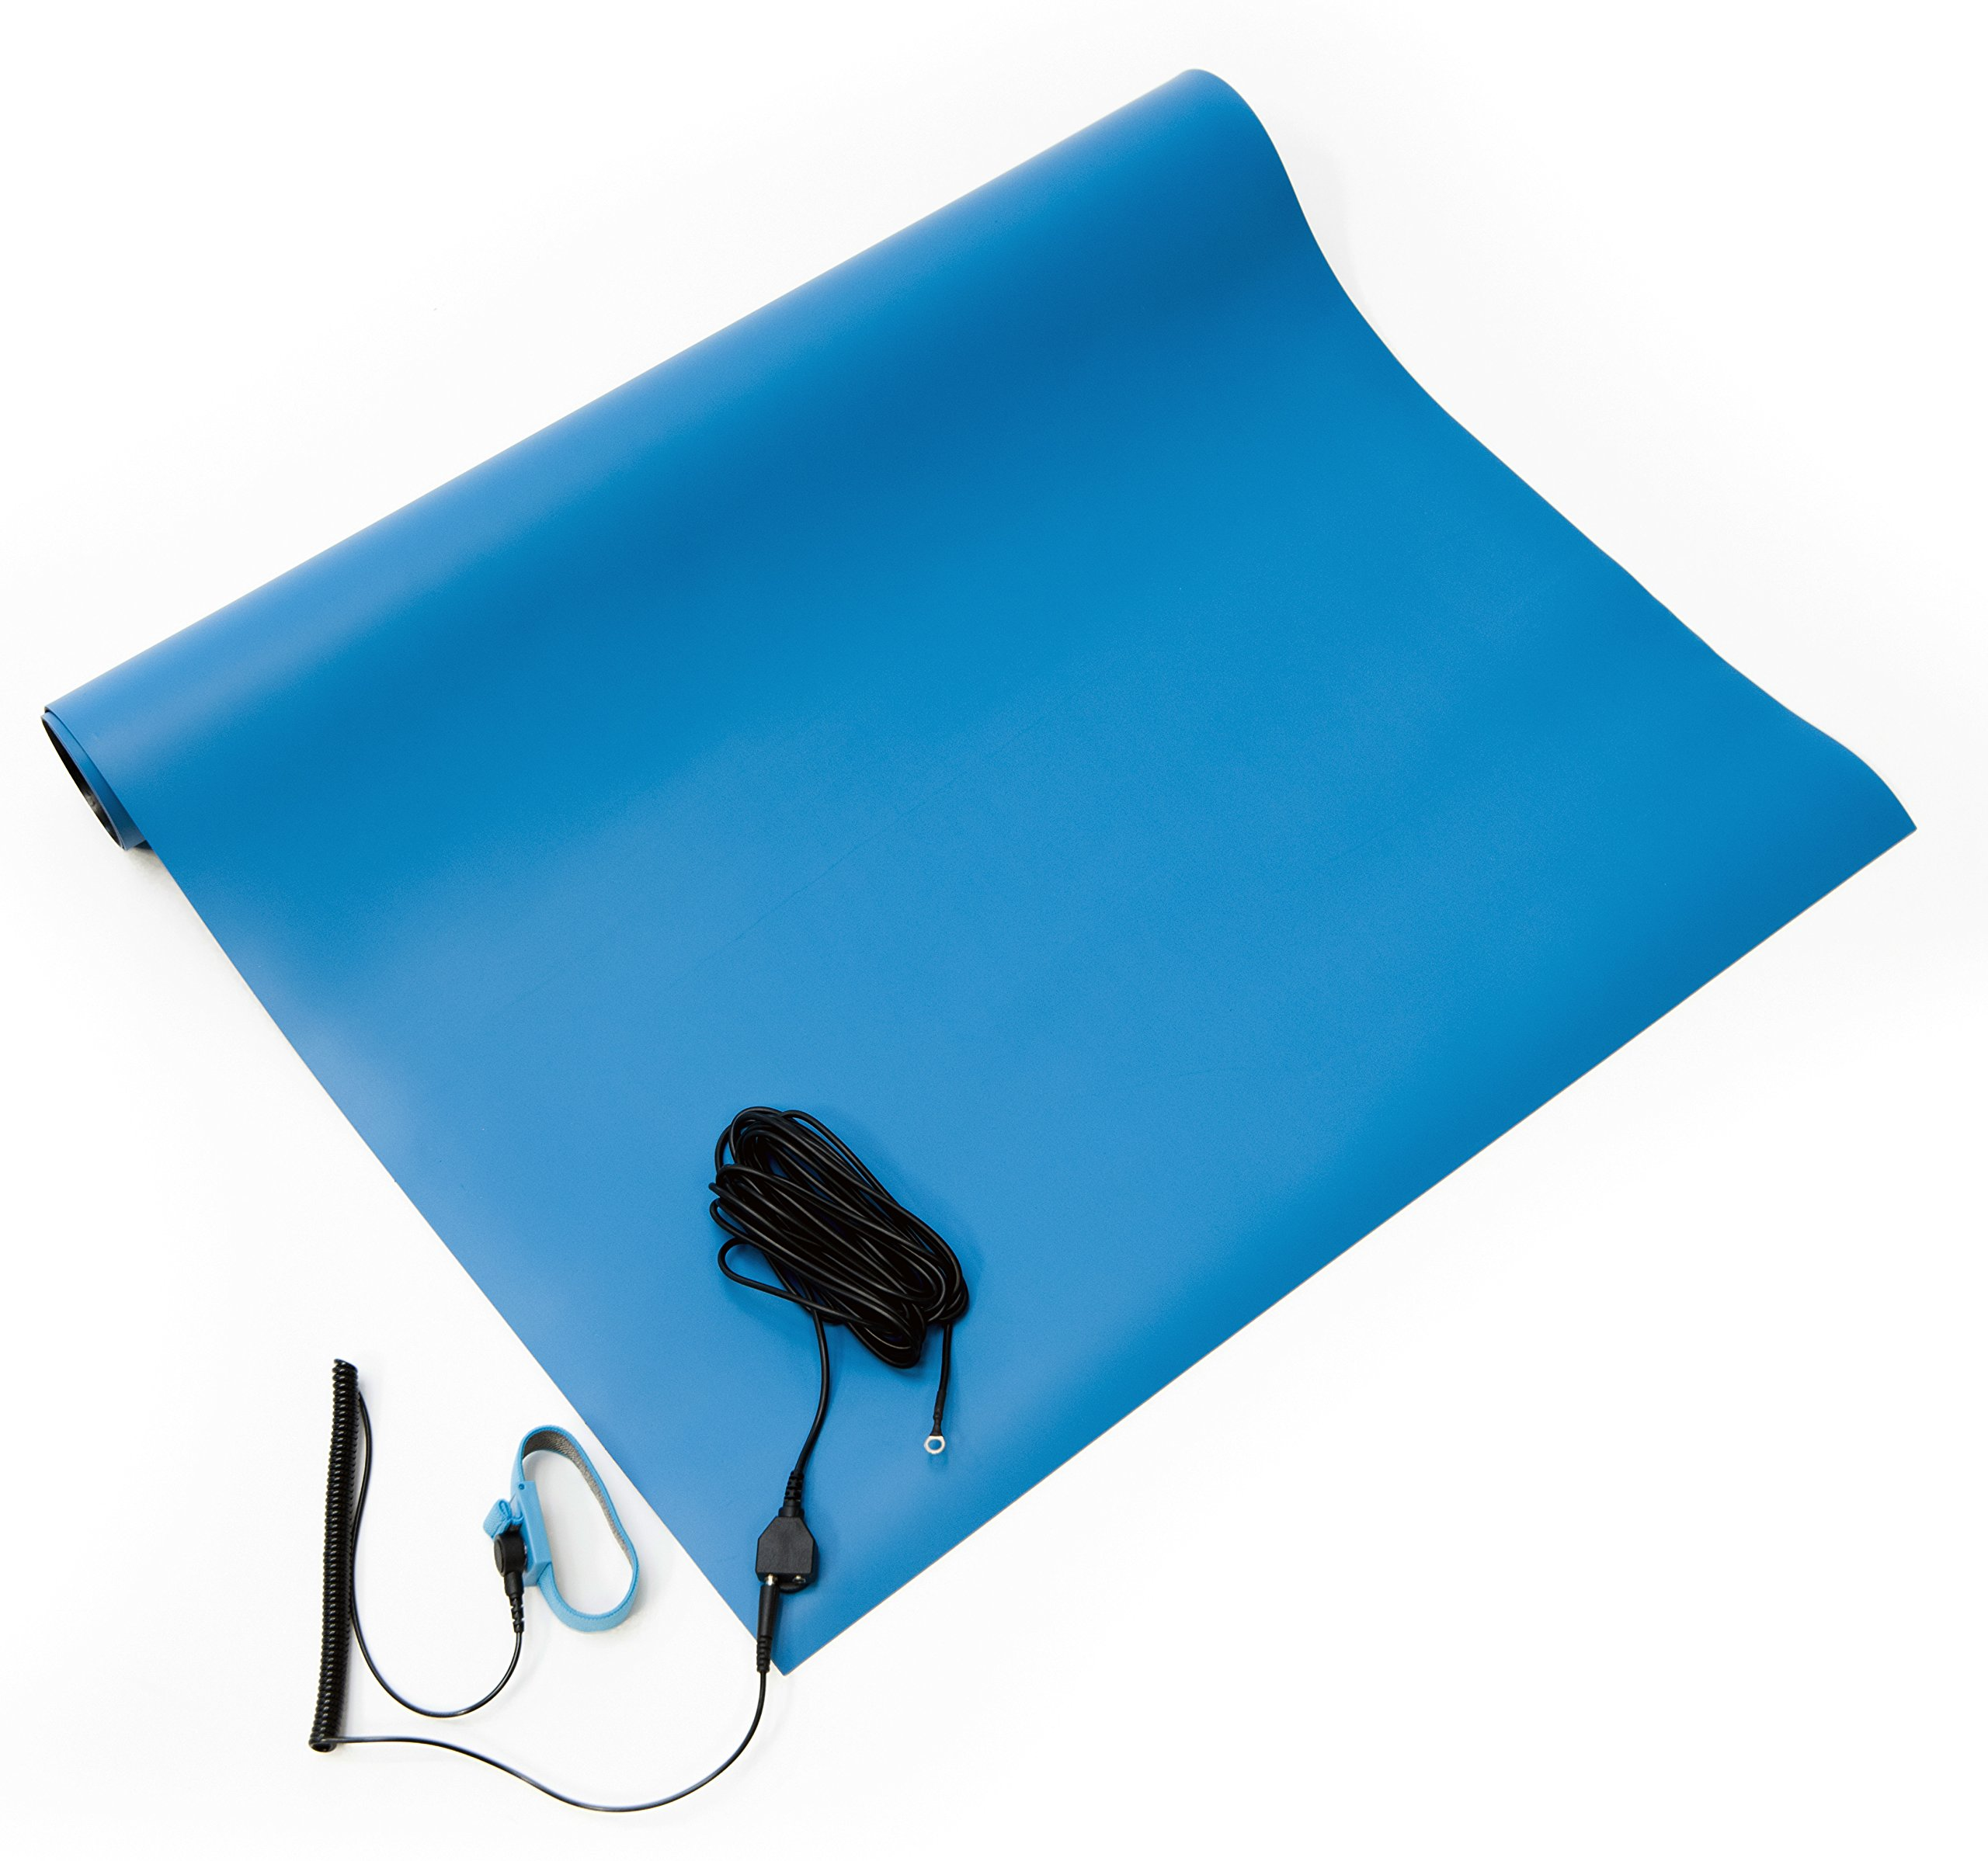 Bertech ESD Two Layer Rubber Mat Kit with a Wrist Strap and a Grounding Cord, 18'' Wide x 24'' Long x 0.06'' Thick, Blue